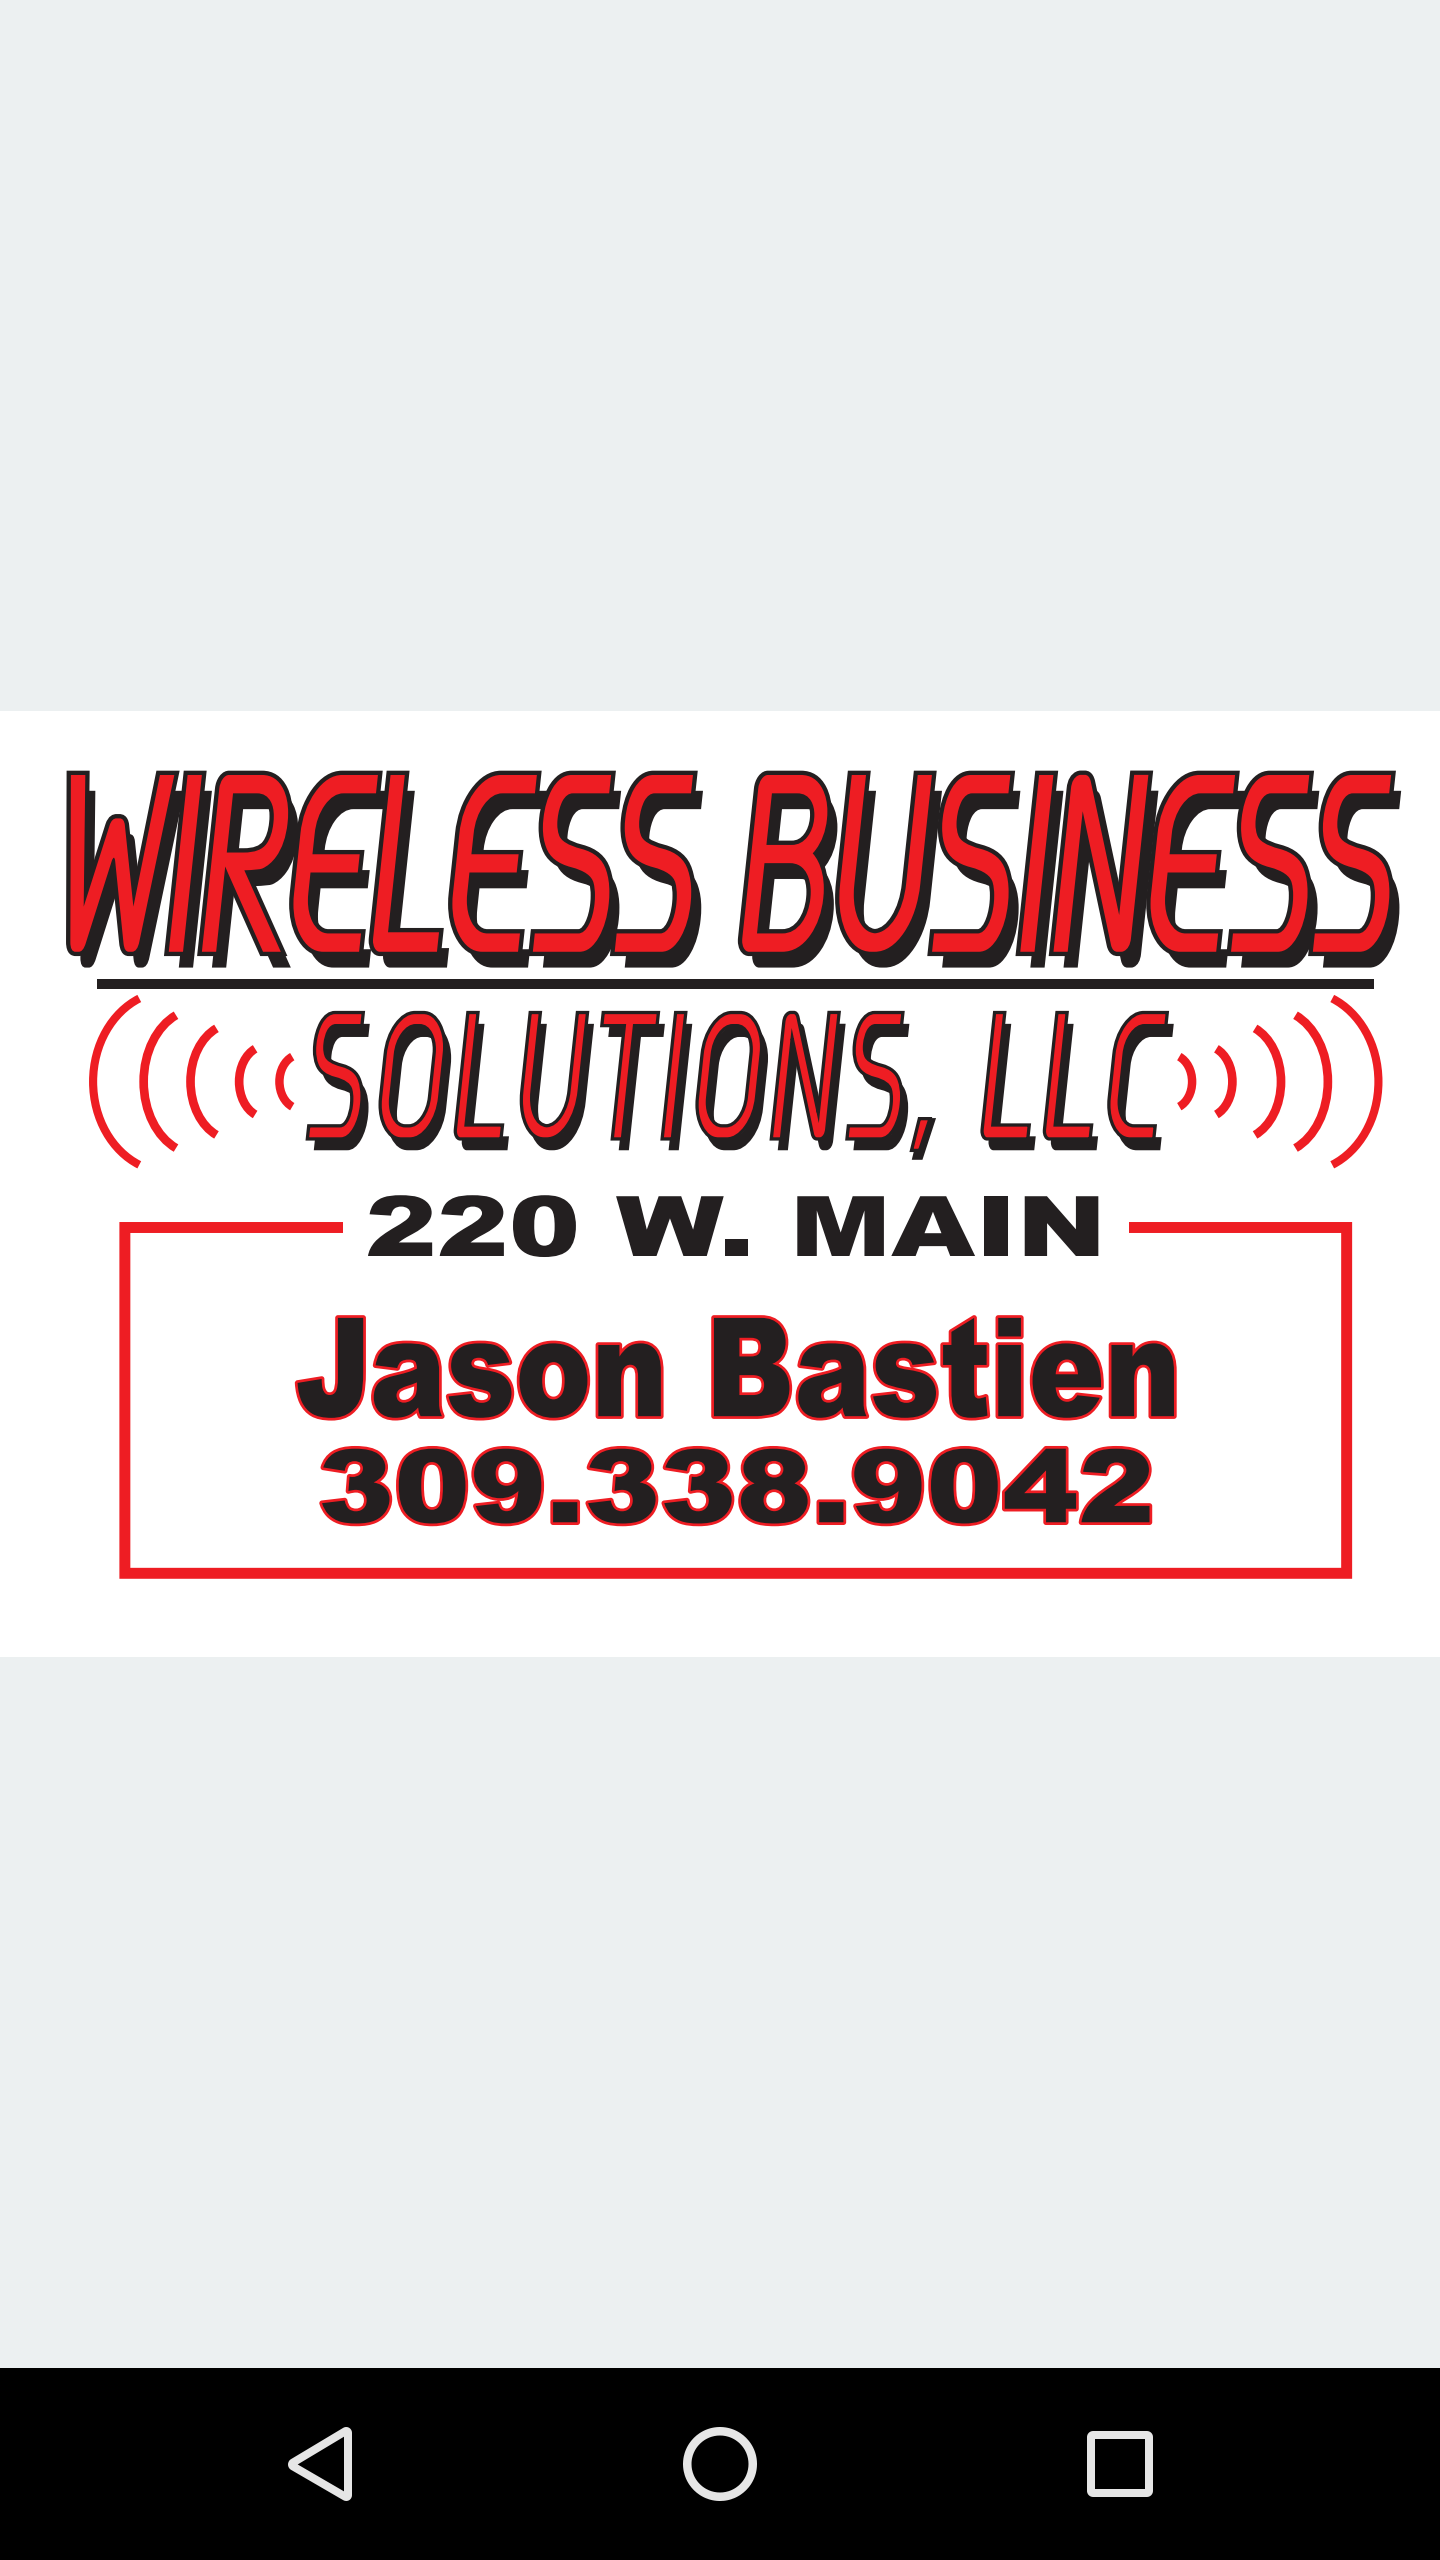 Wireless Business Solutions